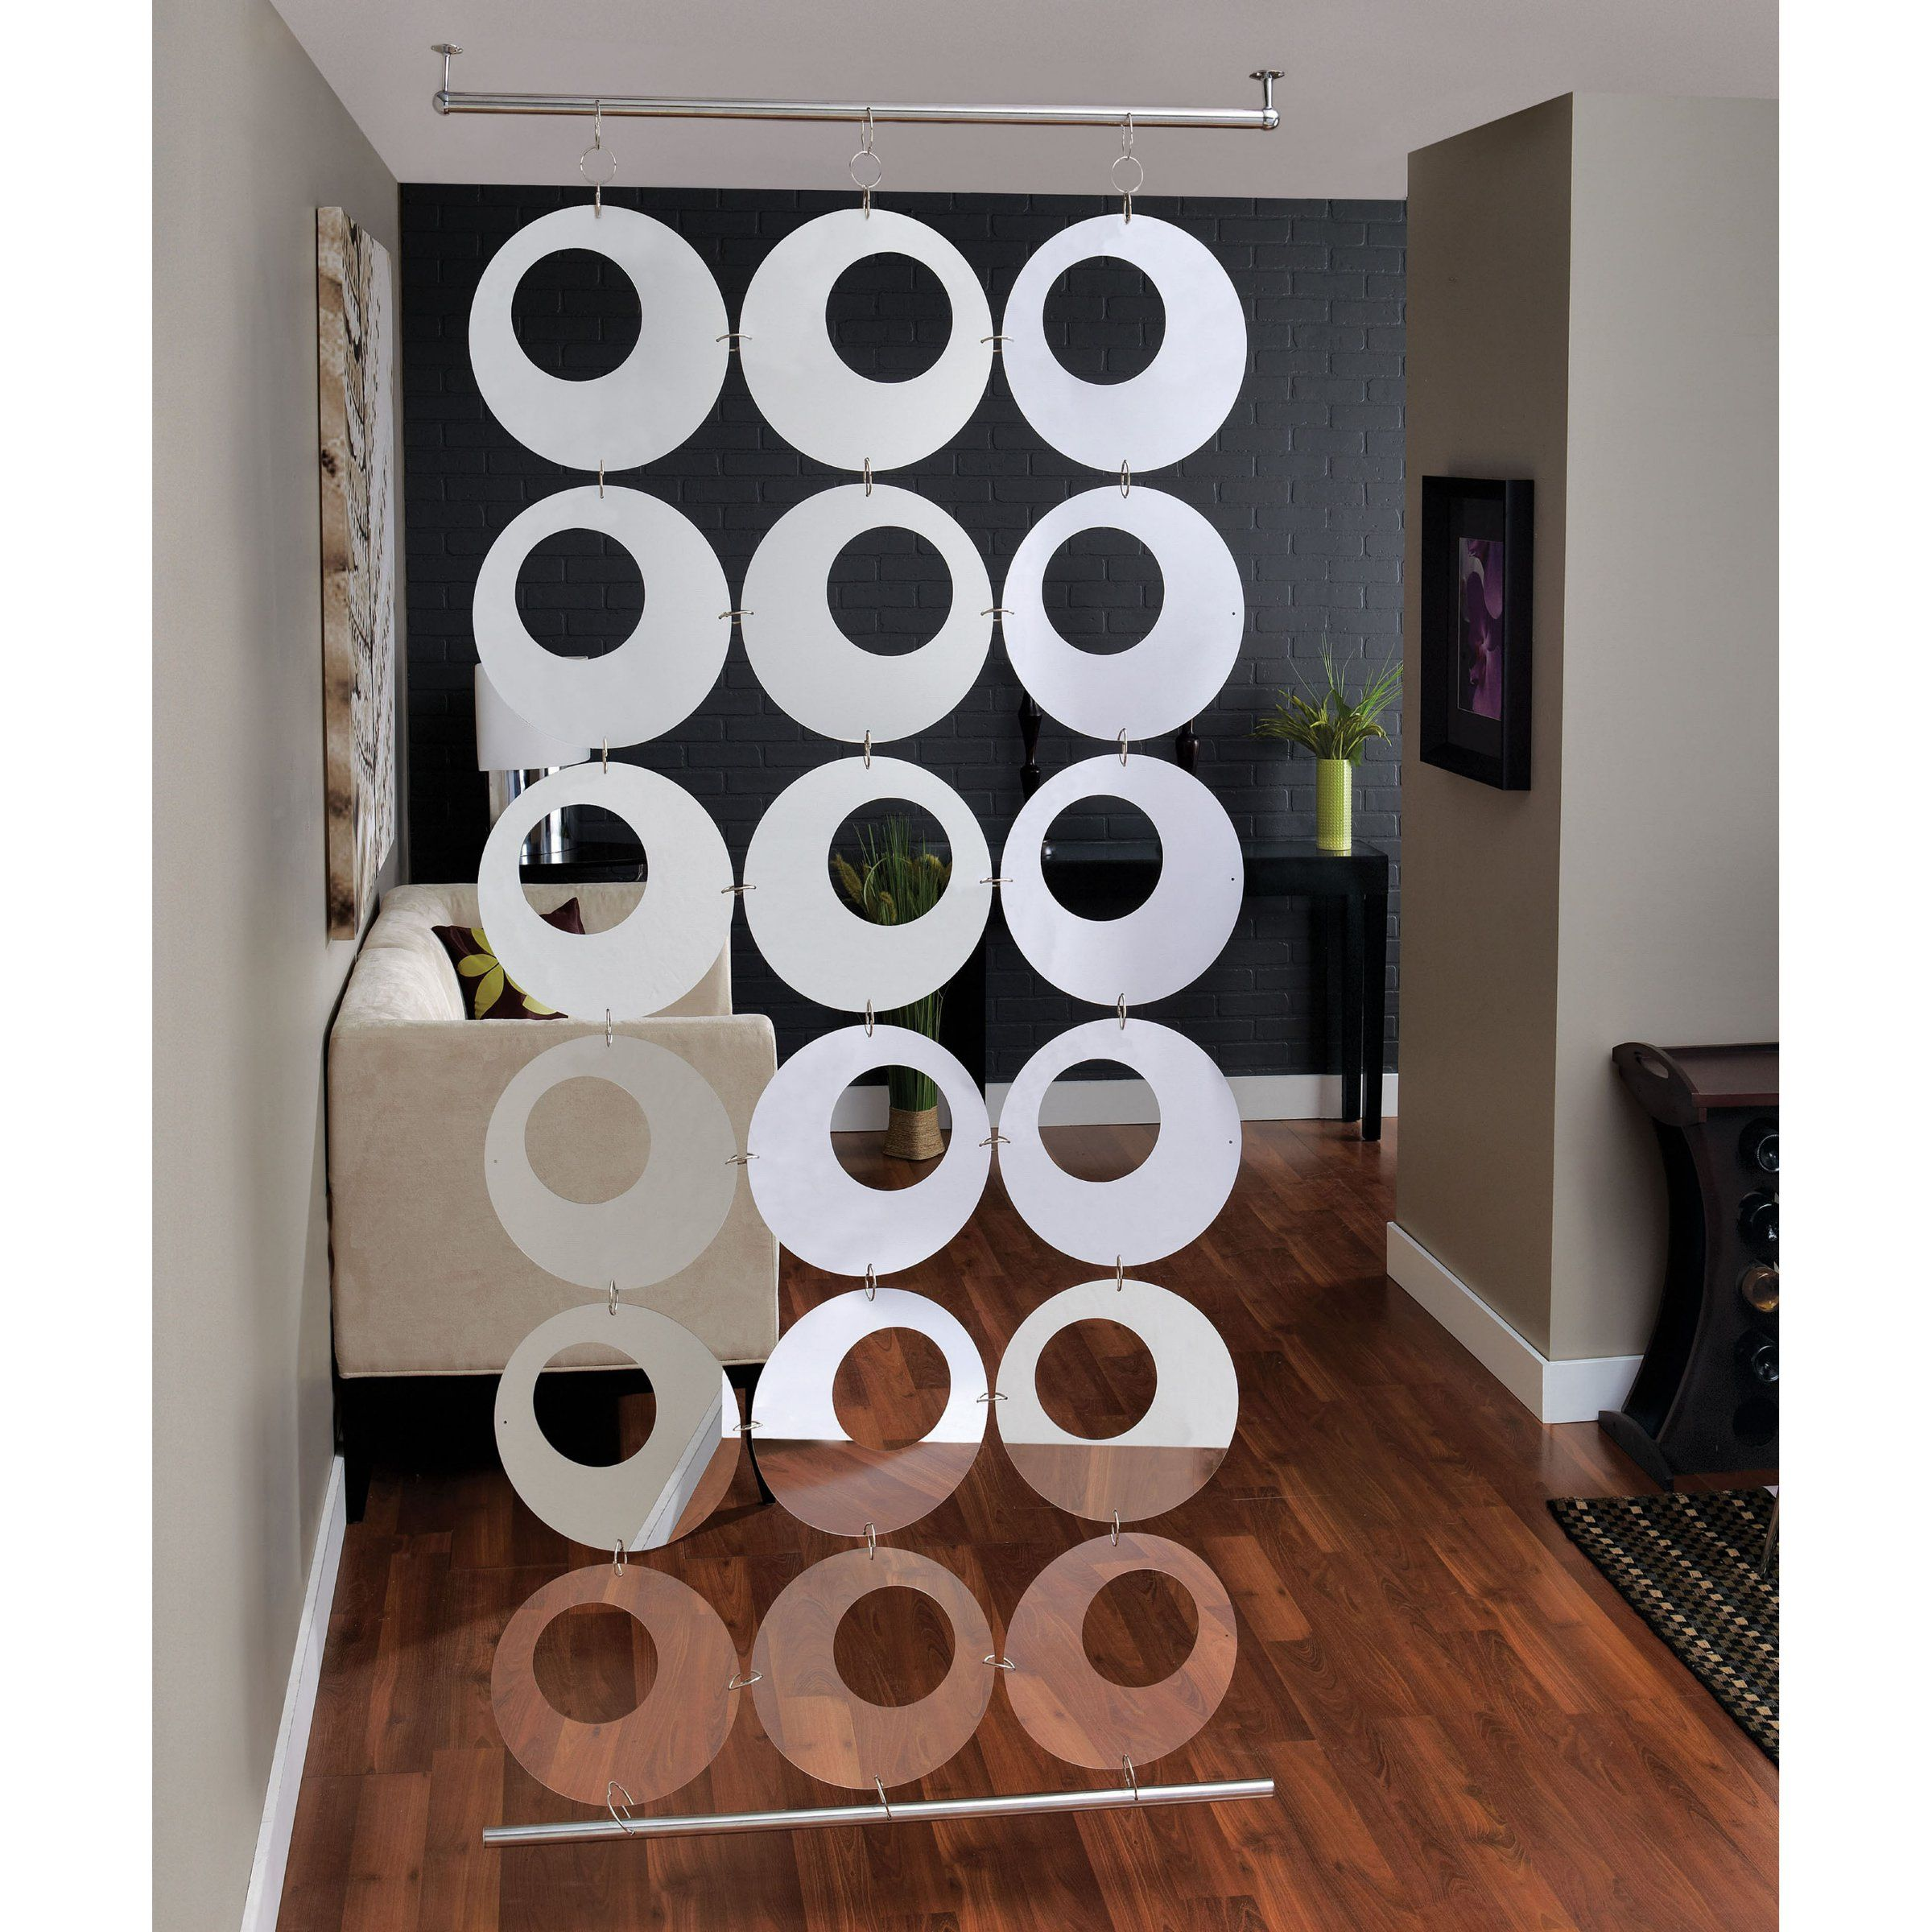 rooms tall toger then style divider seemly roomdividers serene hanging inertiahome kit with loft dividers plus wayfair room relieving wall curtain gracious wooden ht